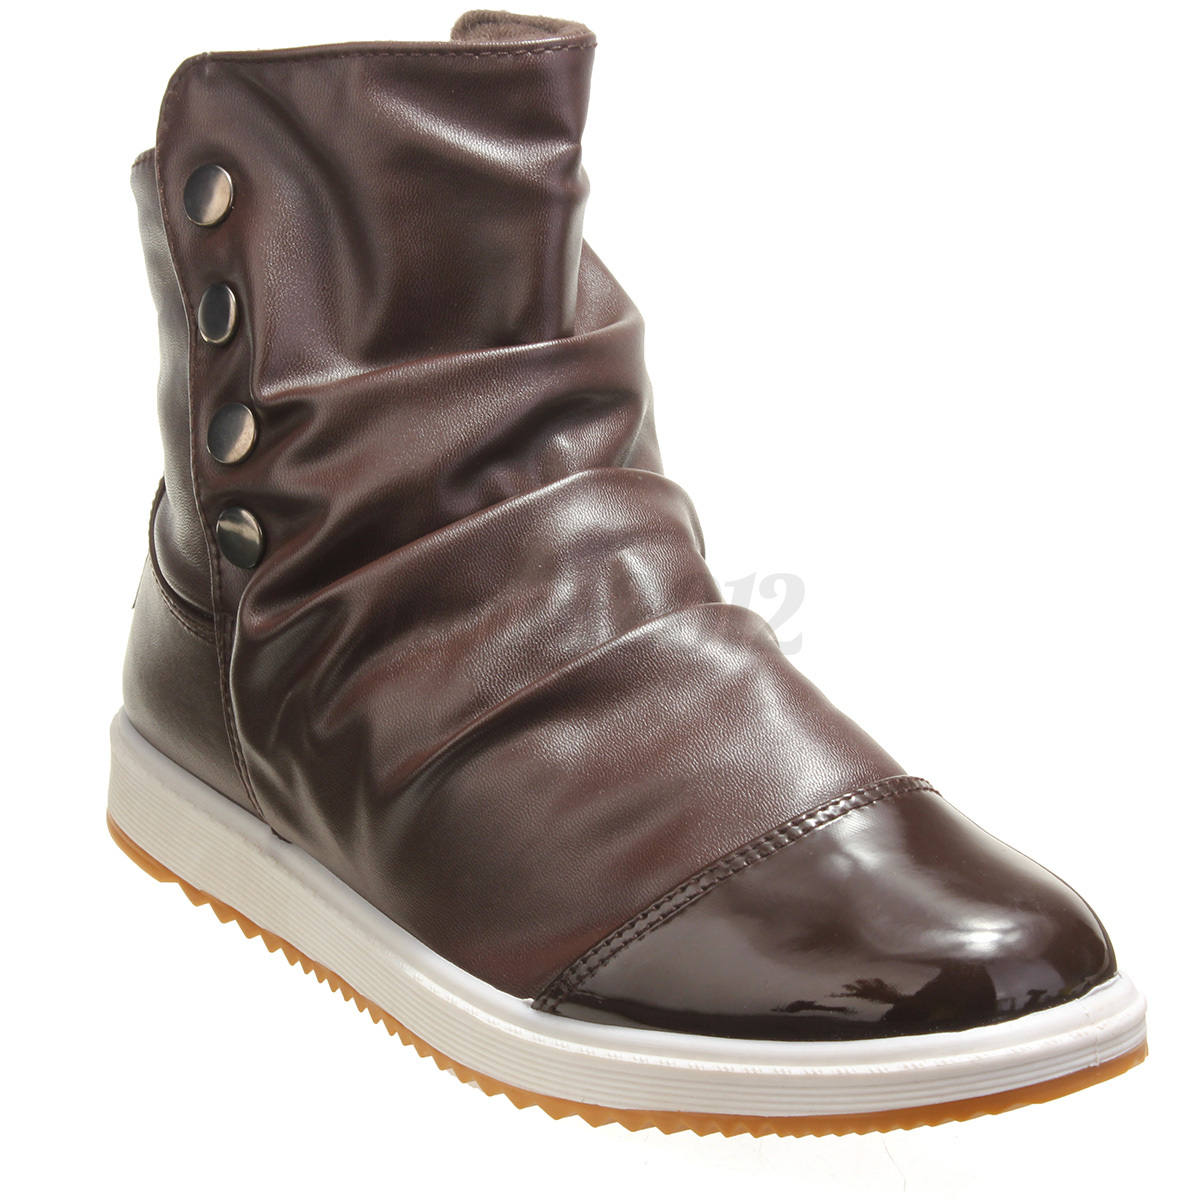 new mens high top winter warm ankle boots flat leather